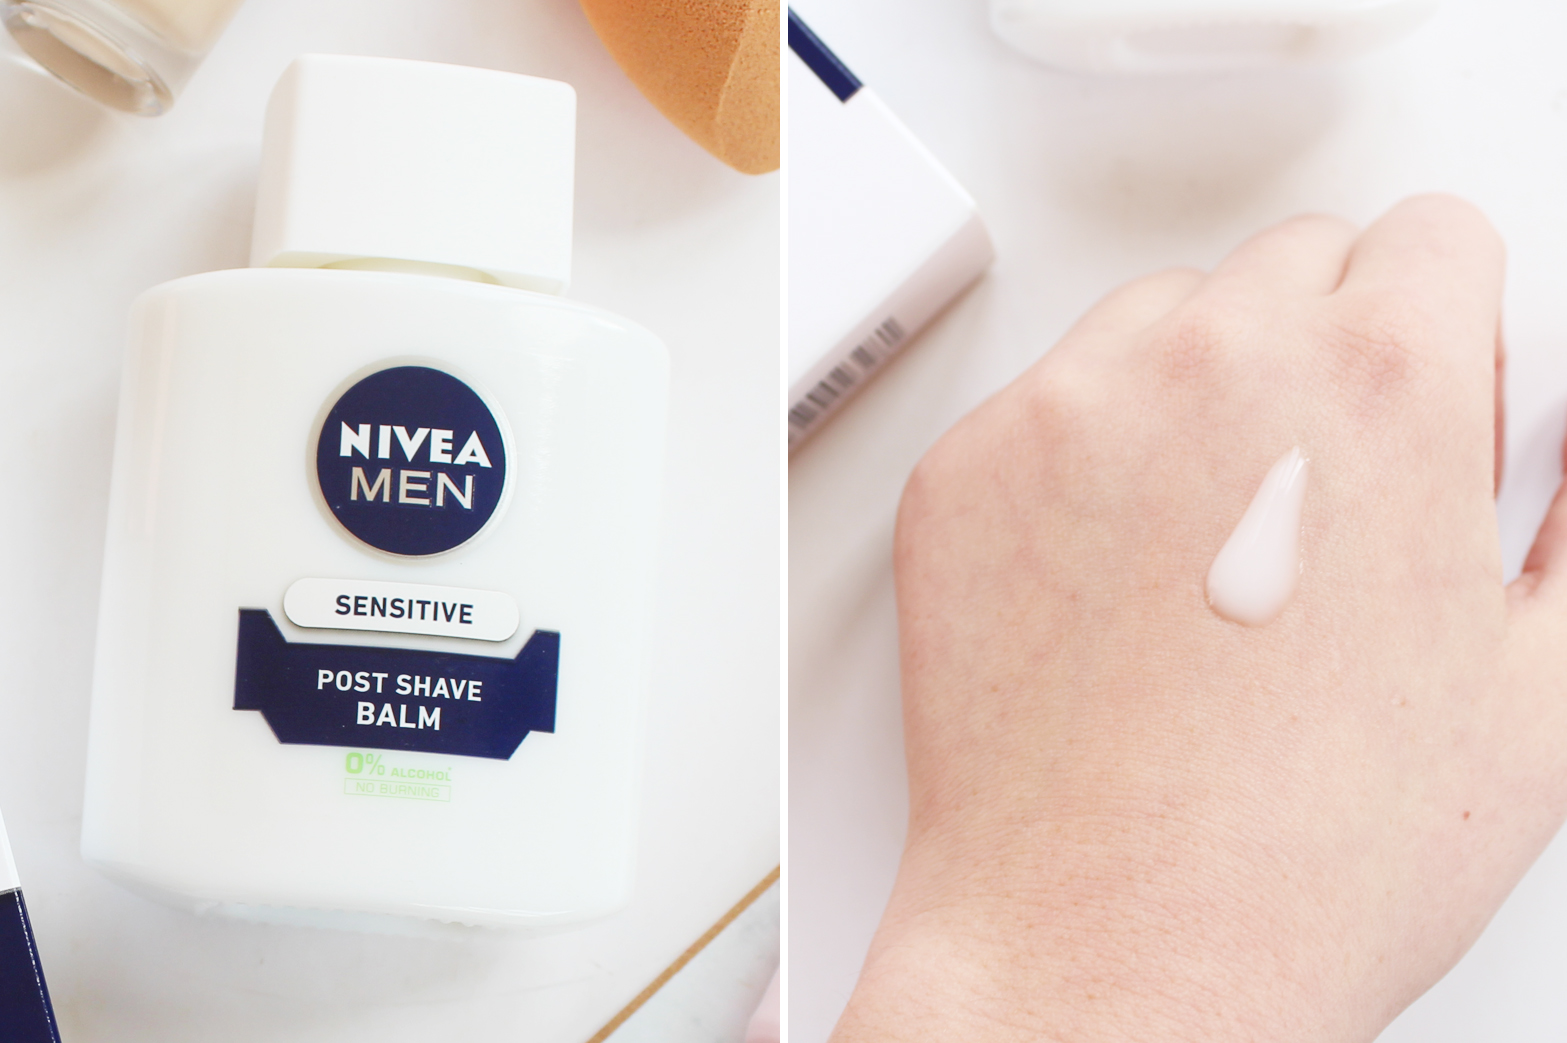 CAN A MEN'S POST SHAVE BALM REALLY WORK AS A PRIMER? - Nivea Men's Post Shave Balm Review - CassandraMyee